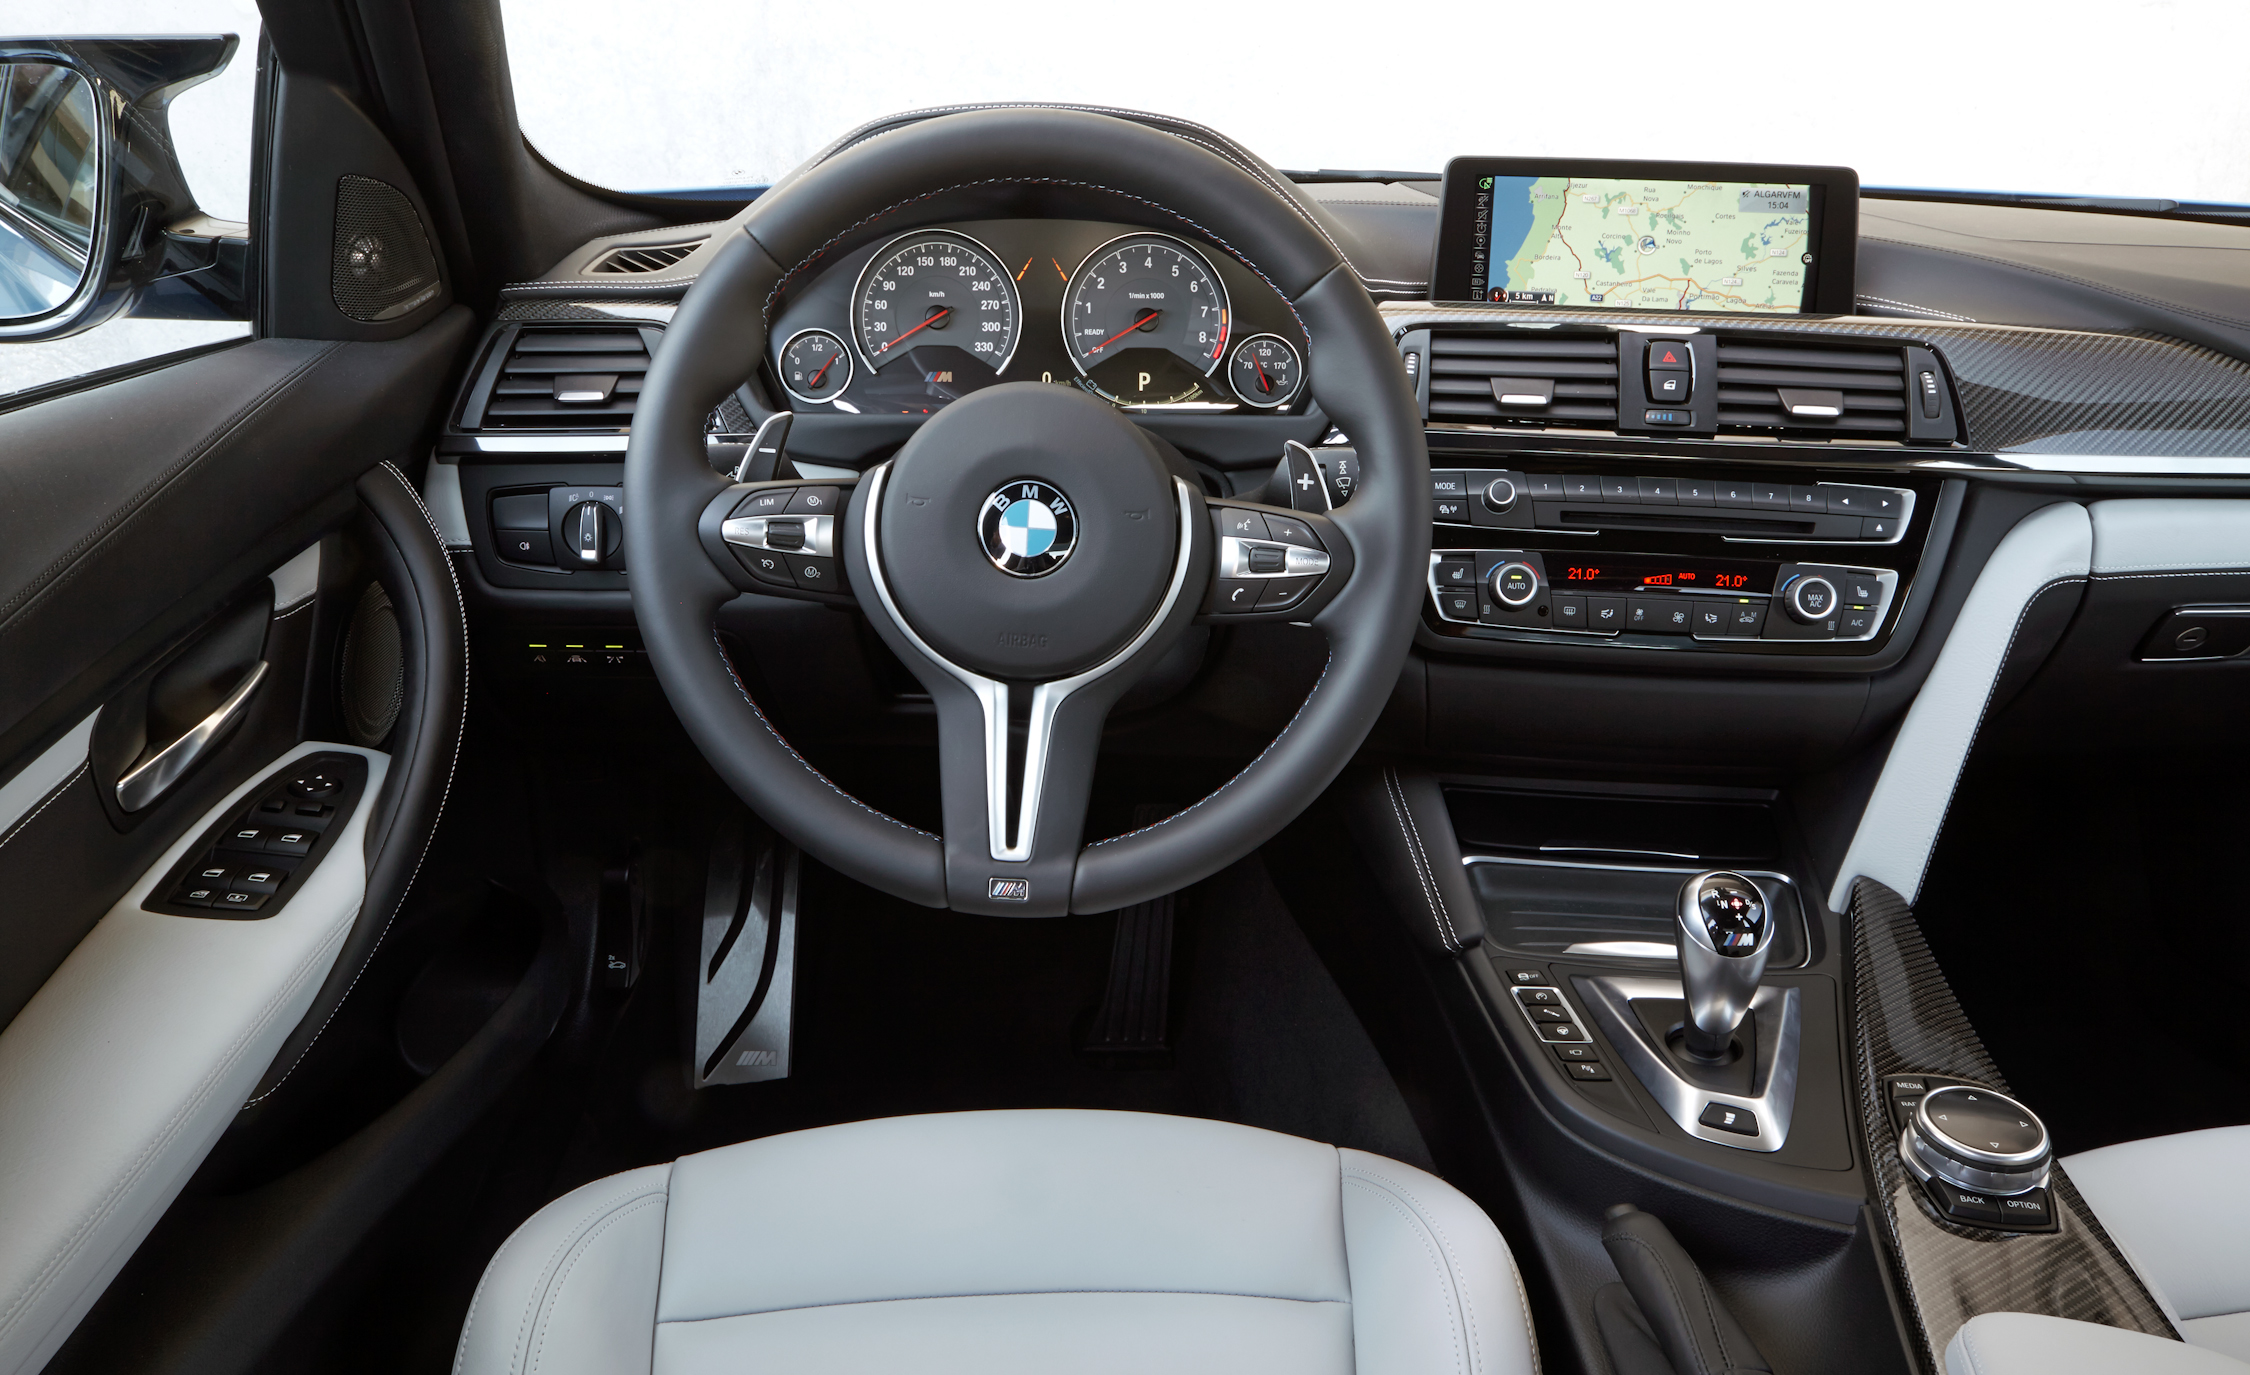 2015 BMW M3 Sedan Interior (Photo 35 of 55)